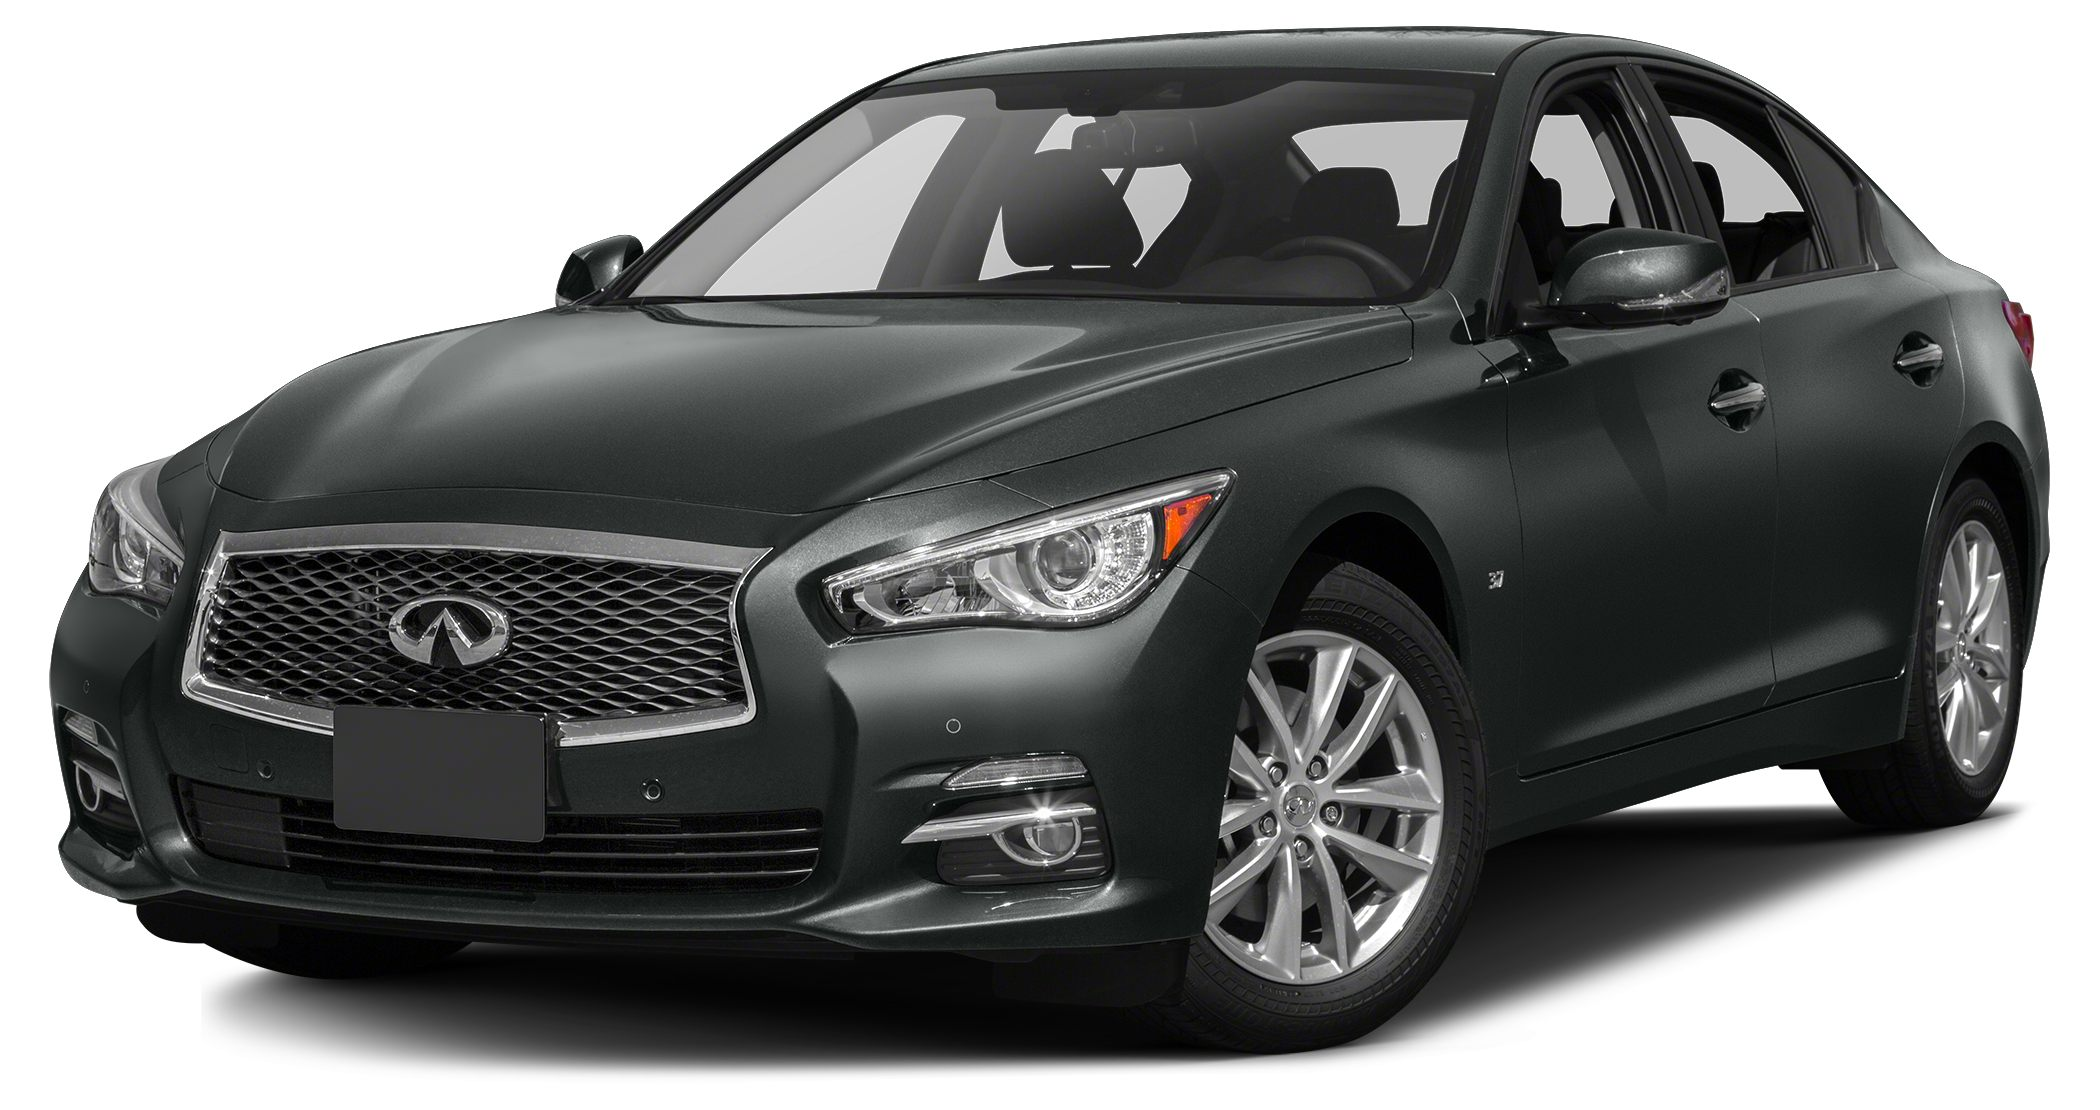 2014 INFINITI Q50 Sport BEAUTIFUL GRAPHITE SHADOW WITH BLACK LEATHER INTERIOR Q50 PREMIUM IS DEFI